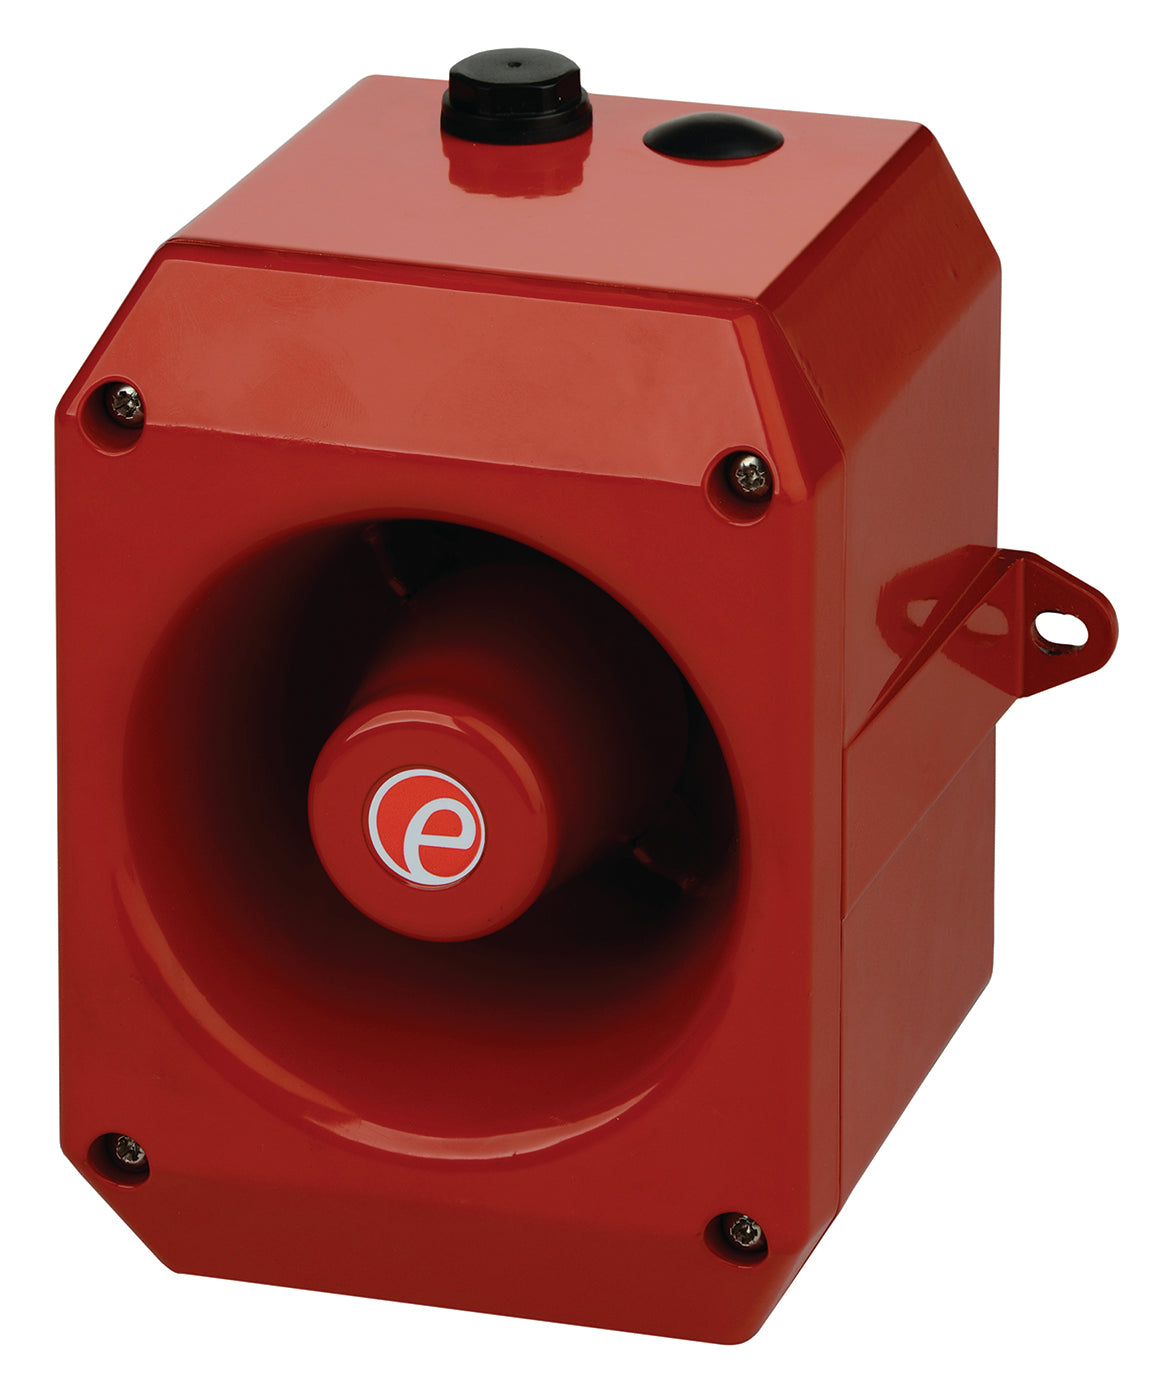 E2S E2S D105 Robust IP66 Metal Sounder - BNR Industrial